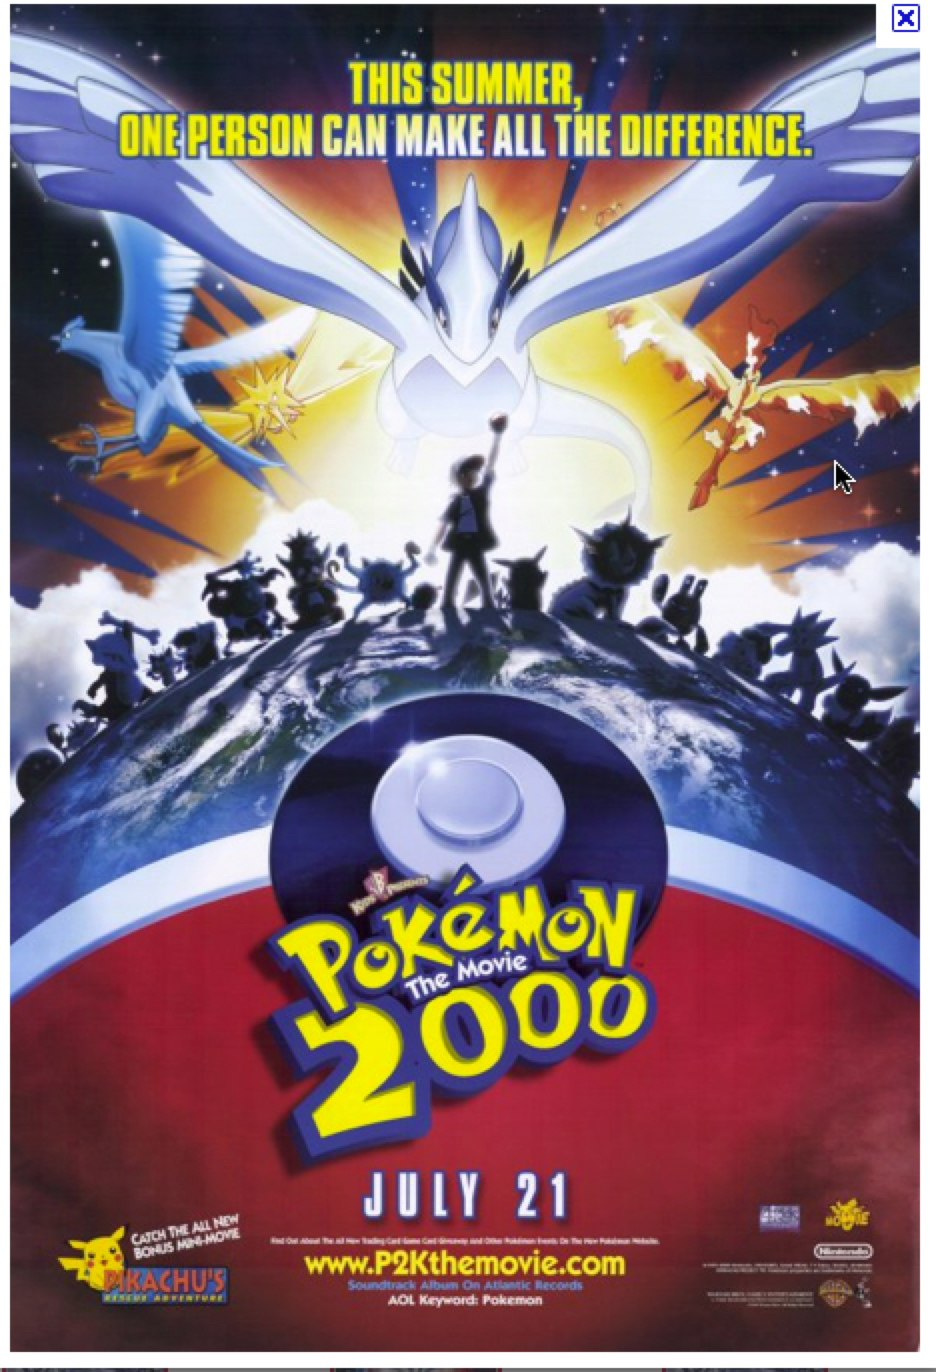 POKEMON2000